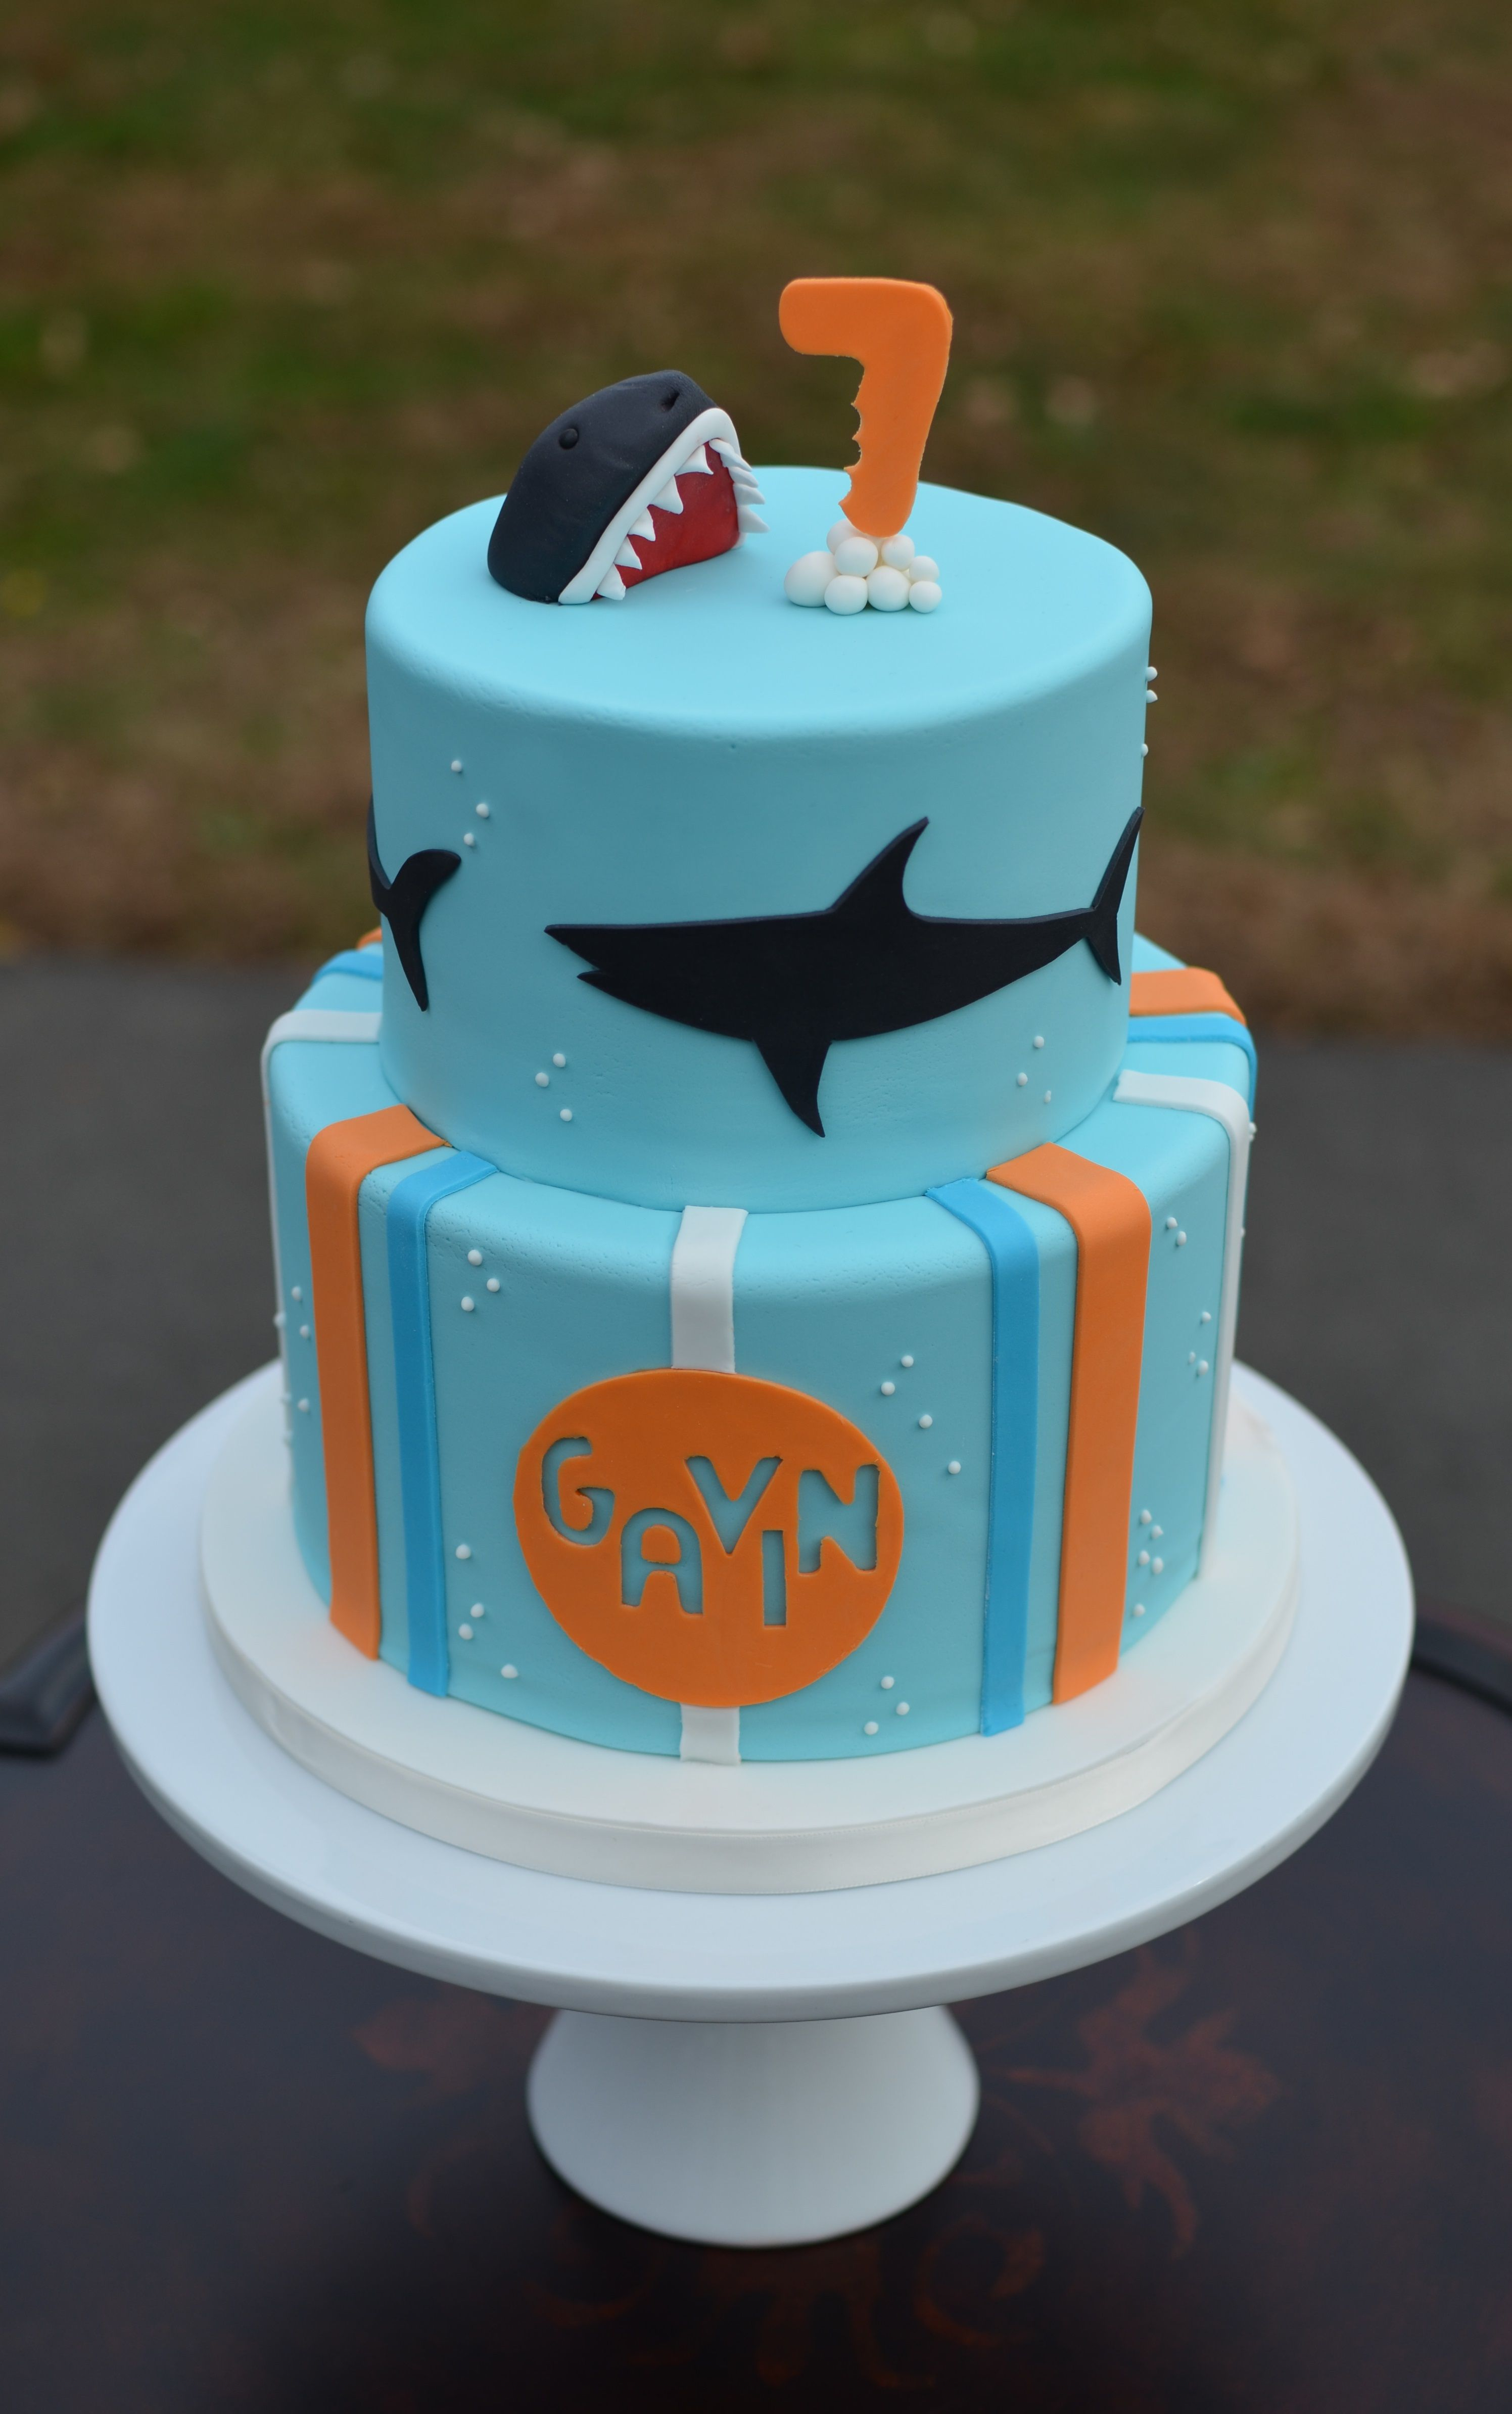 Cookie decorating party ideas - Shark Birthday Cake